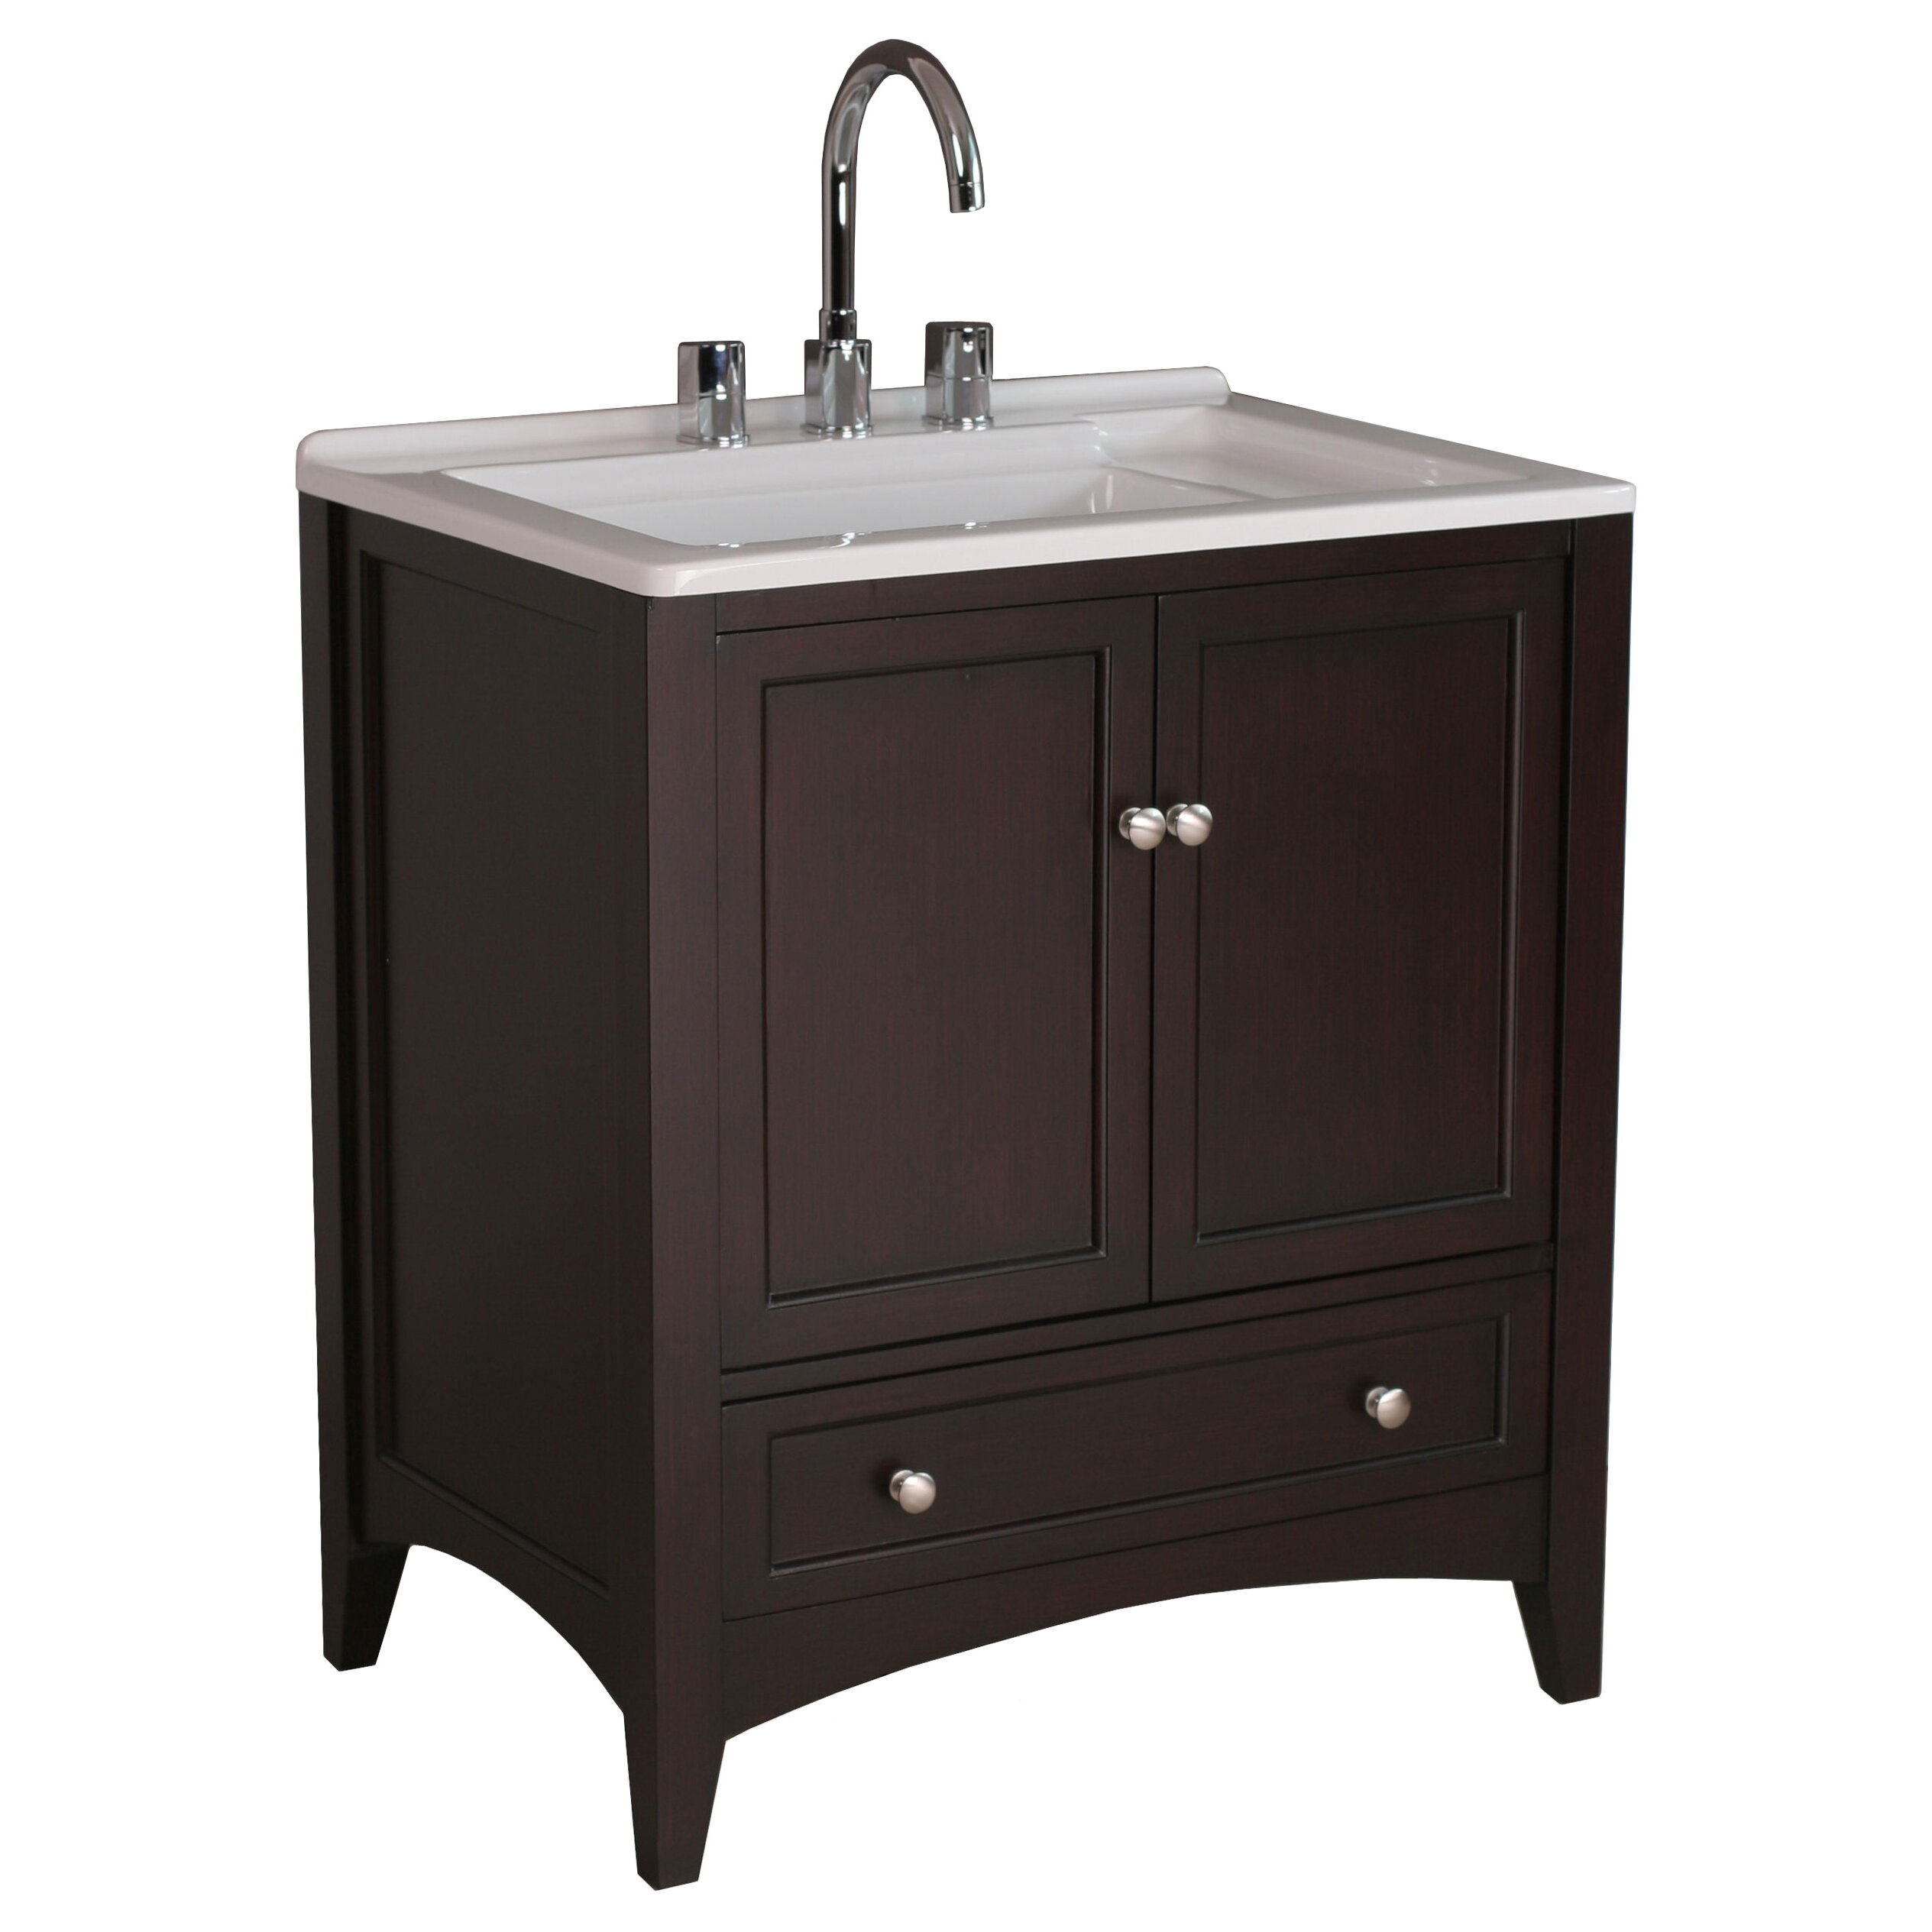 31 Bathroom Vanity Inch Drawer Wayfair